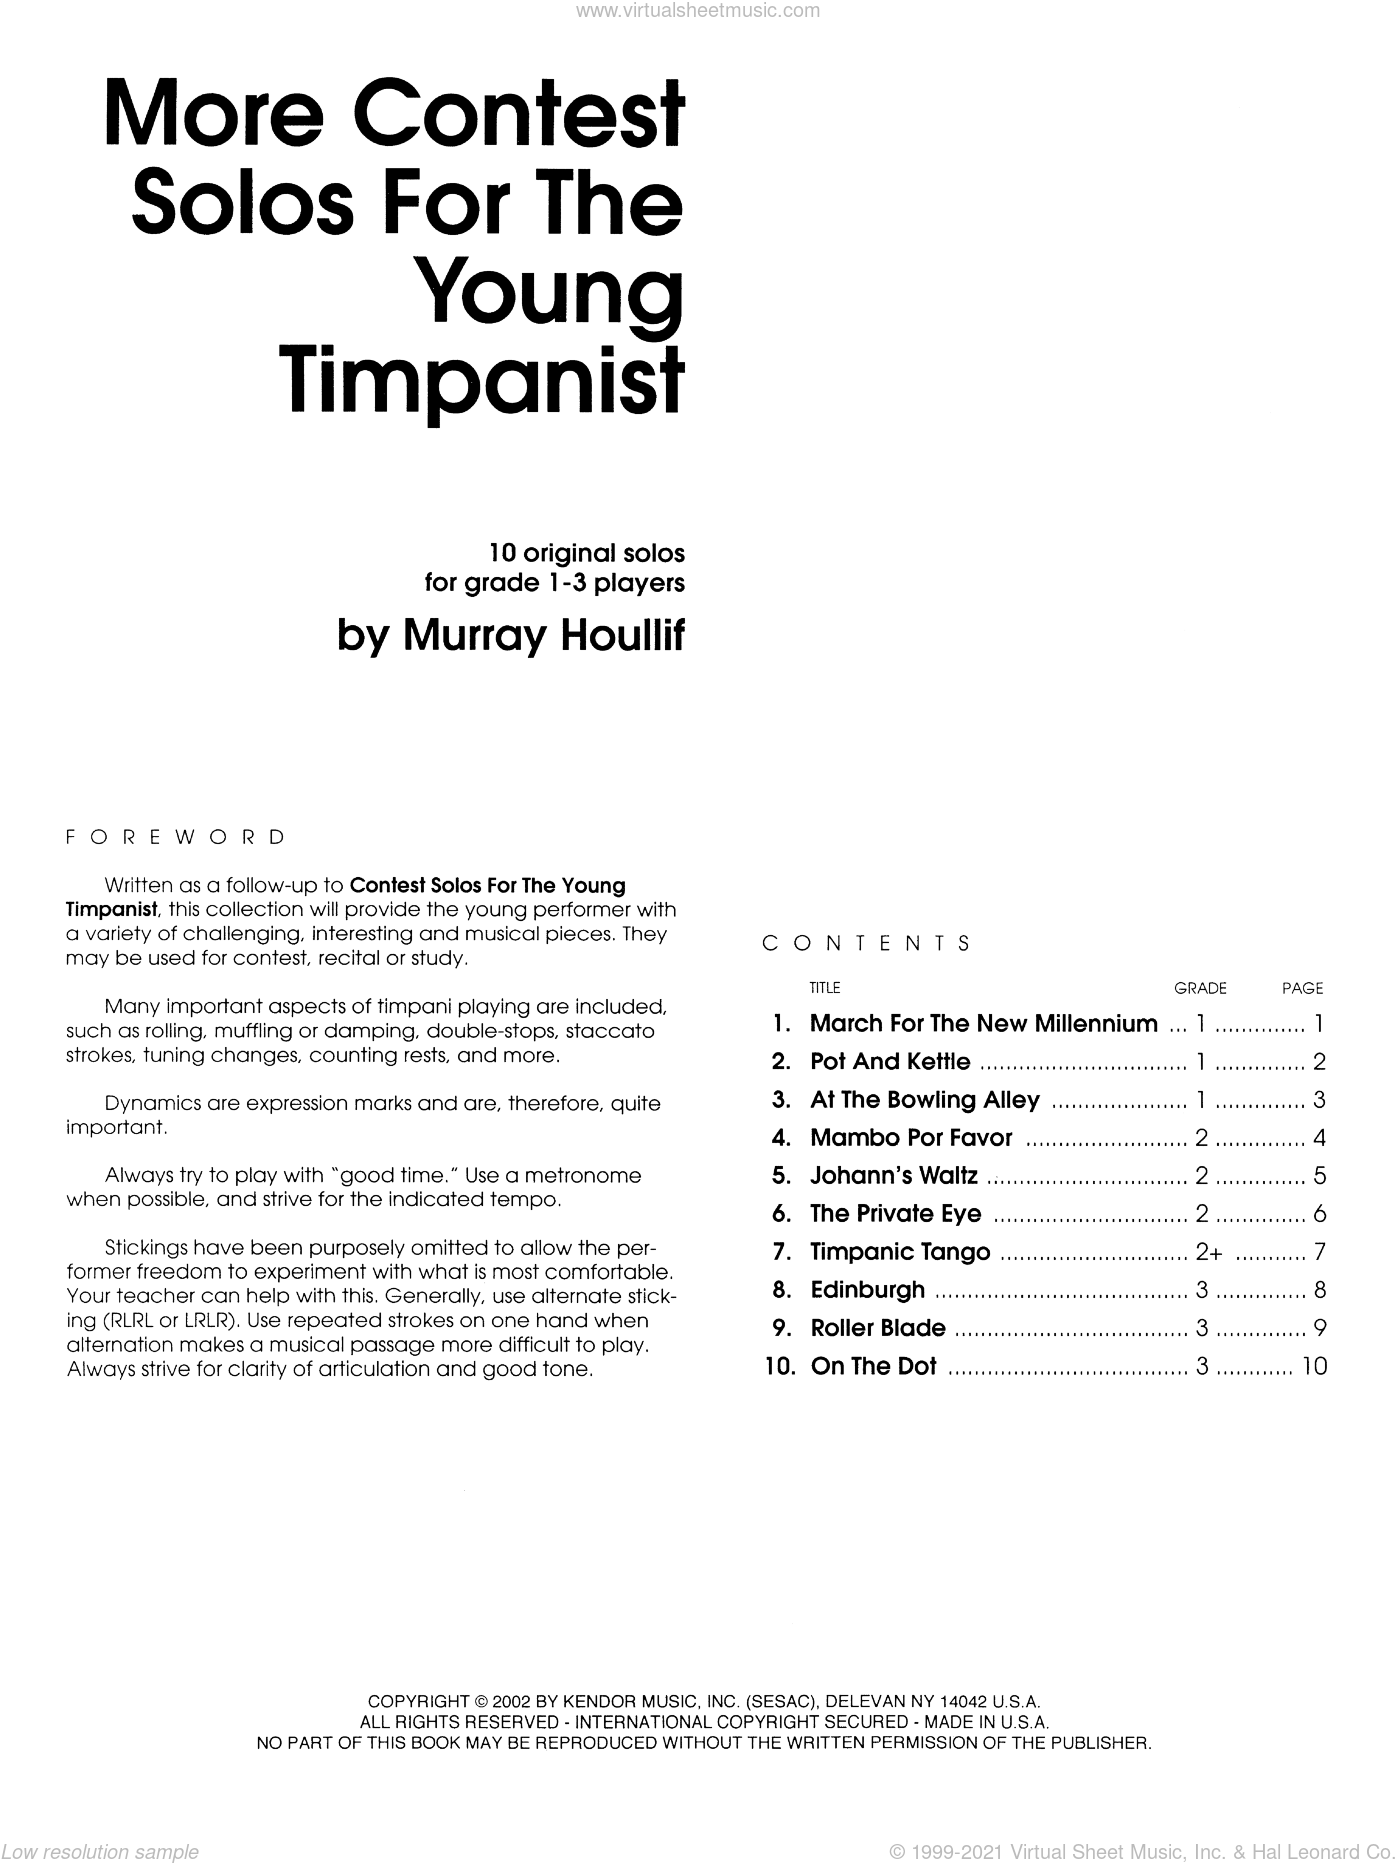 More Contest Solos For The Young Timpanist sheet music for percussions by Houllif, classical score, intermediate skill level